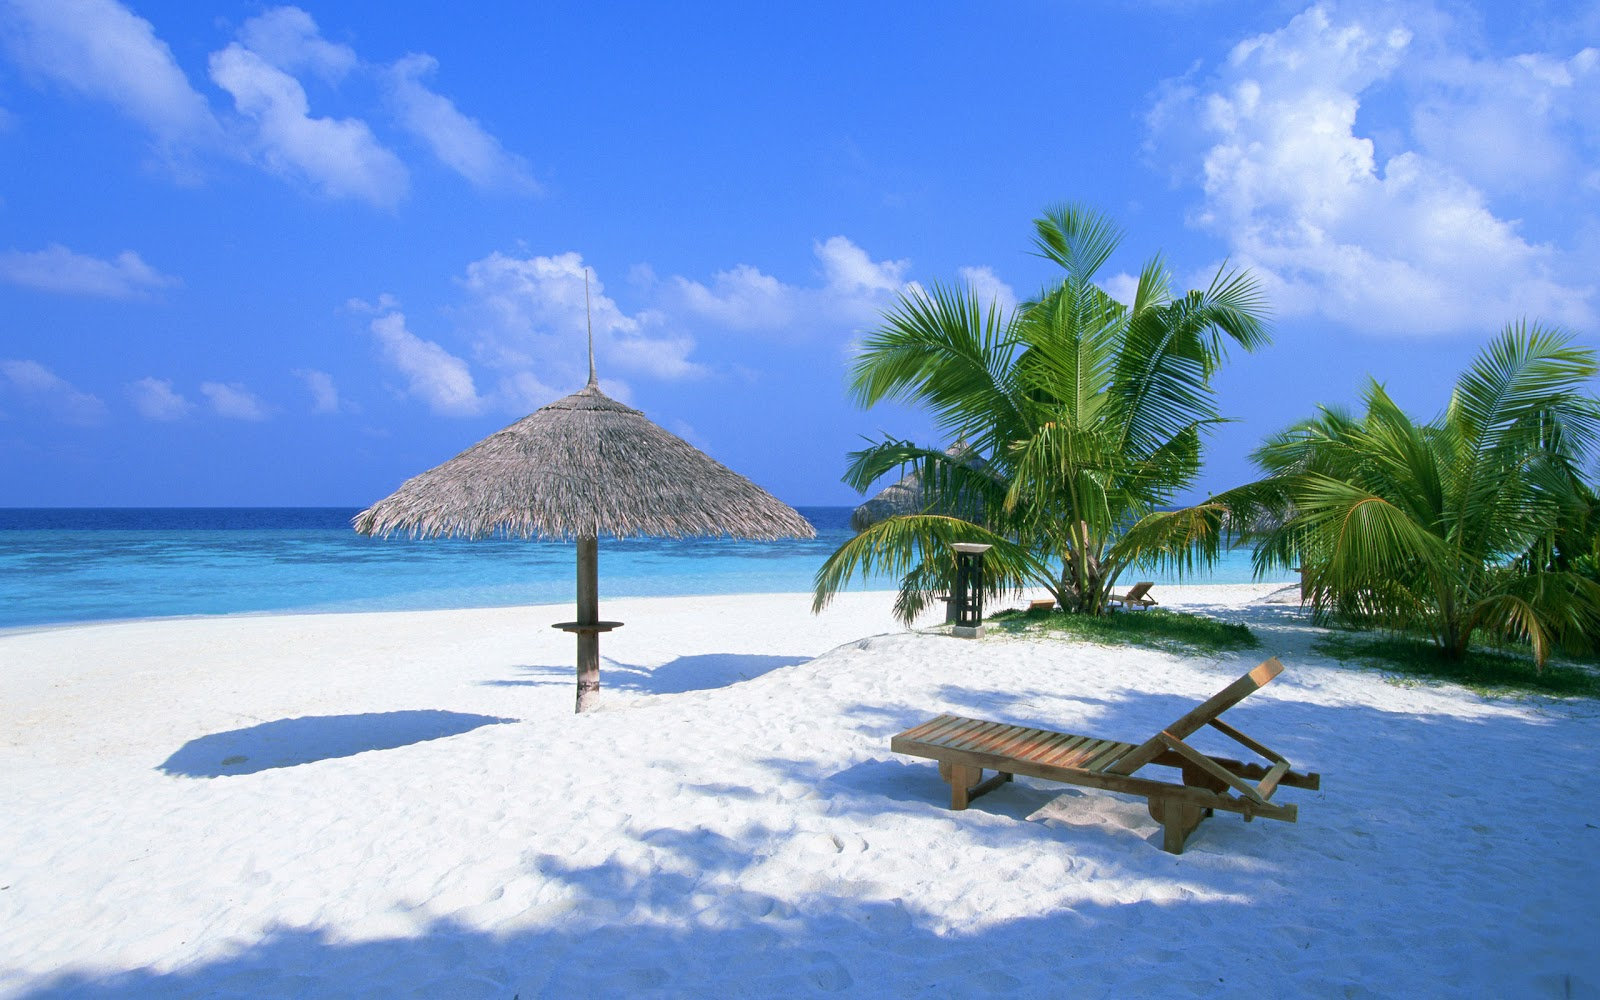 Description Hd Wallpaper Widescreen Beach In All Kind Of Resolutions And Sizes For Your PC Windows XP Vista 7 Mac OS